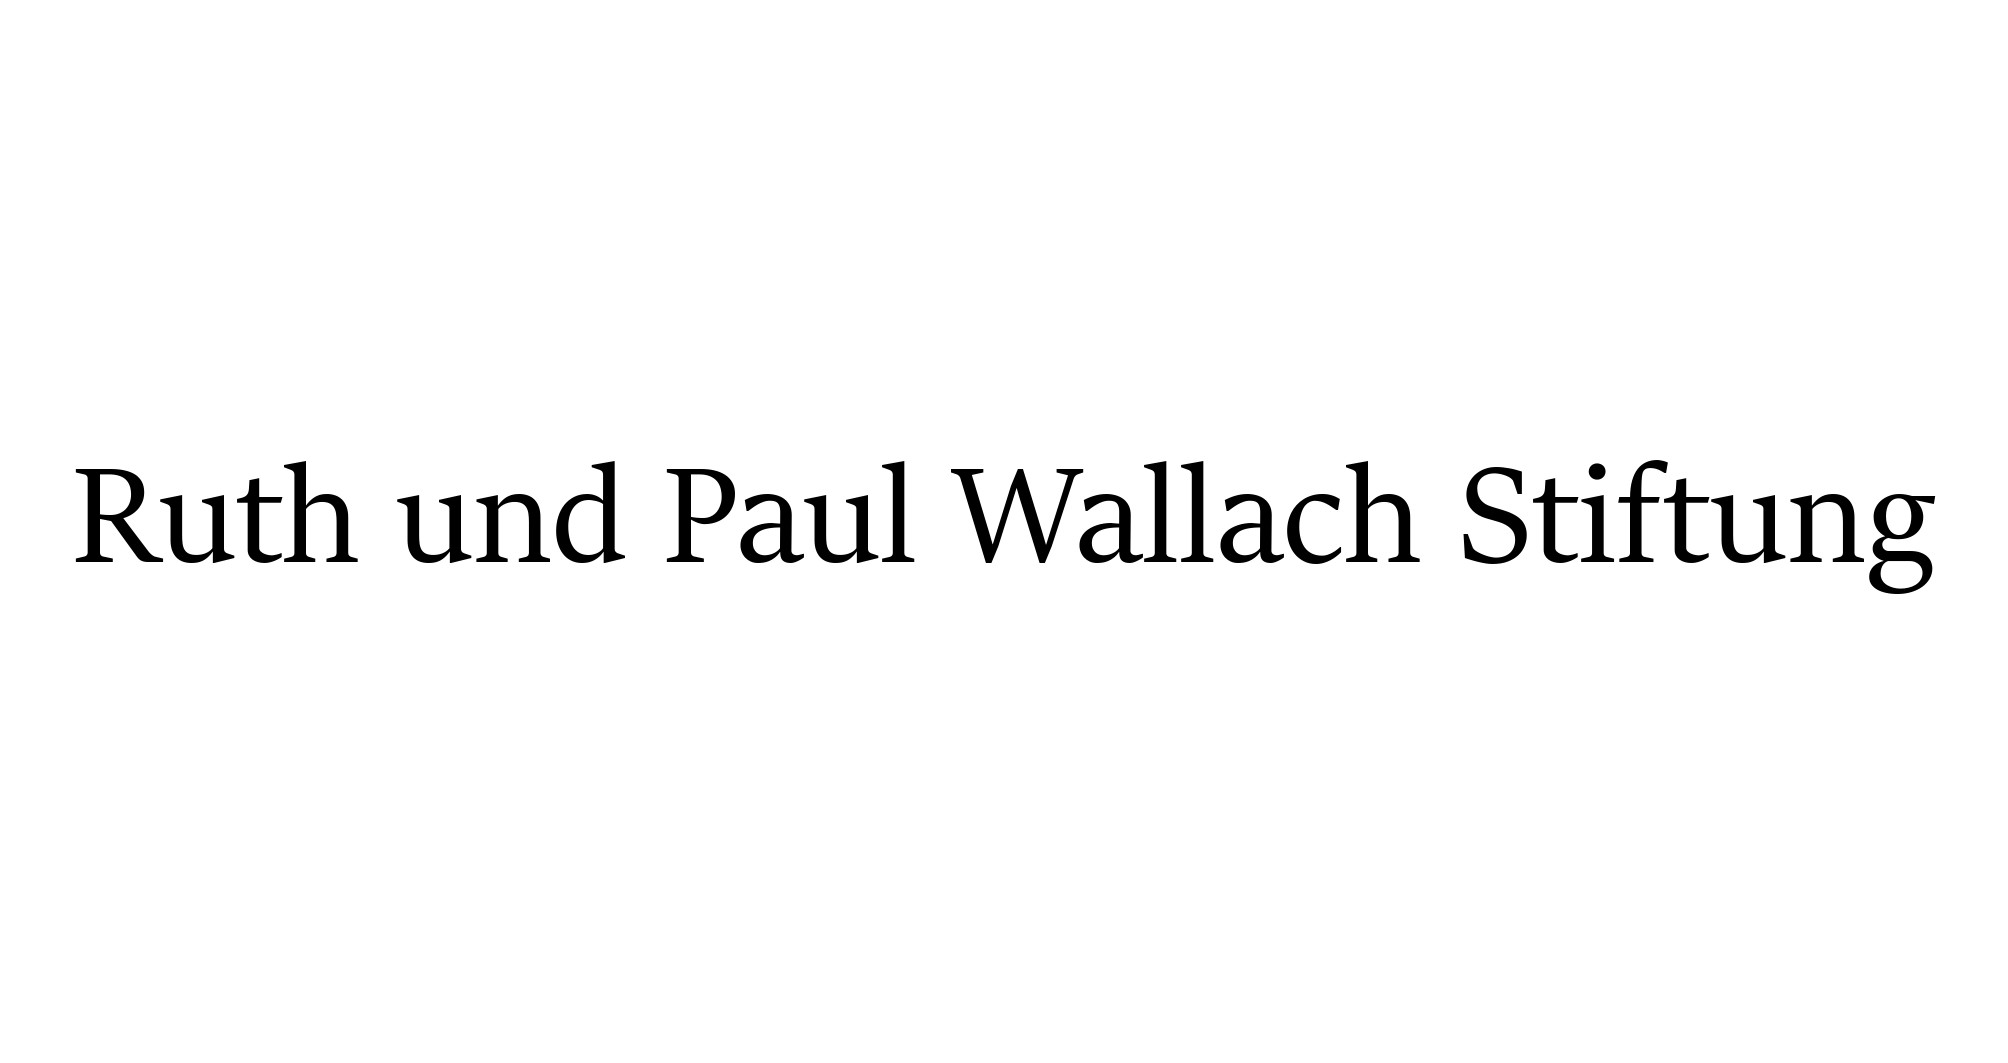 wallach for website.jpeg